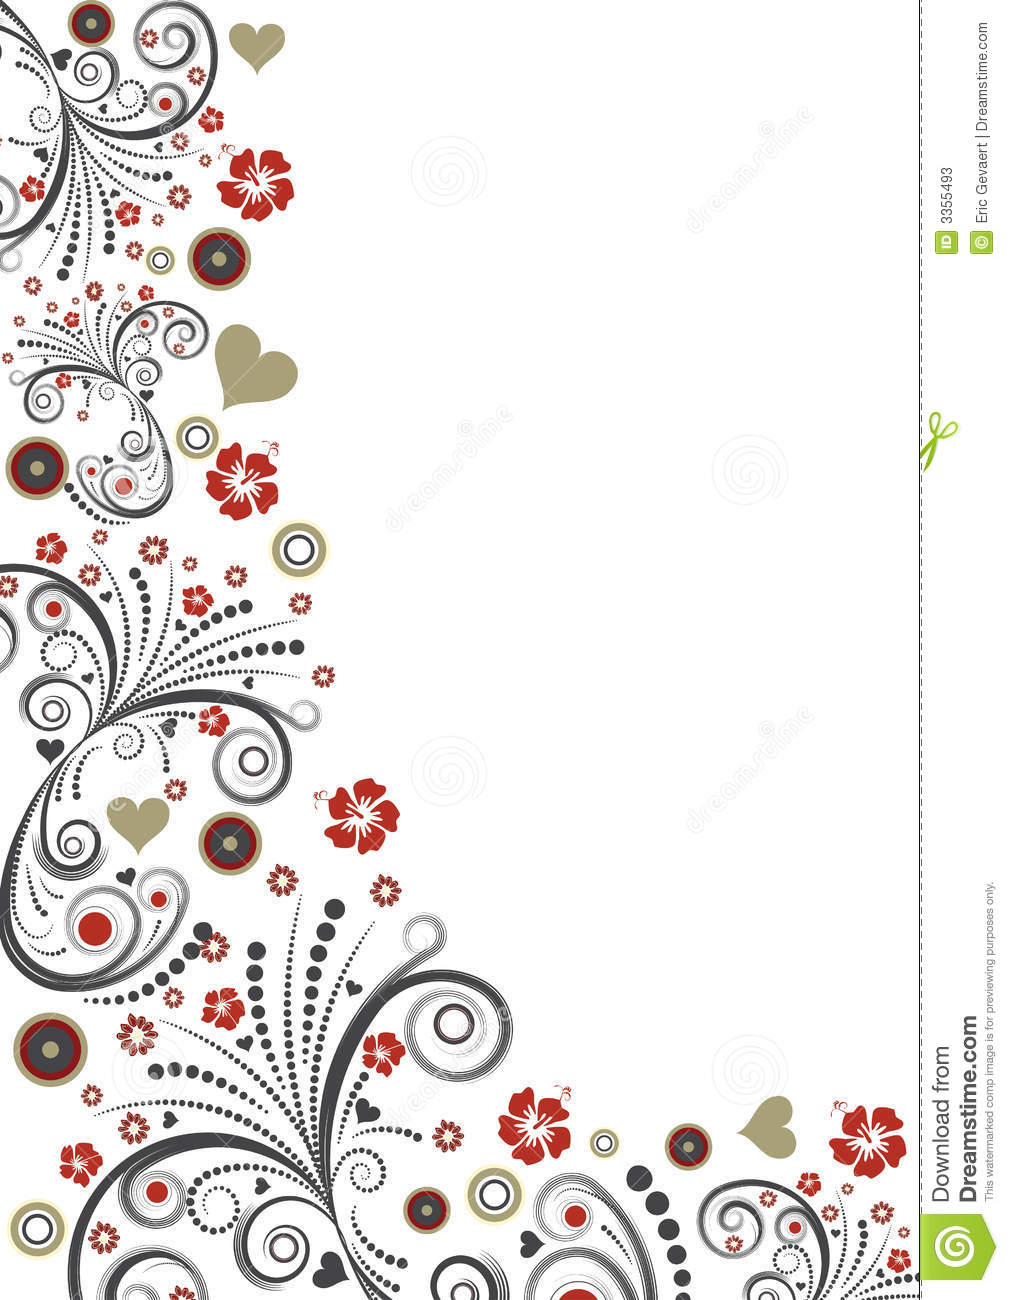 Vector floral border design